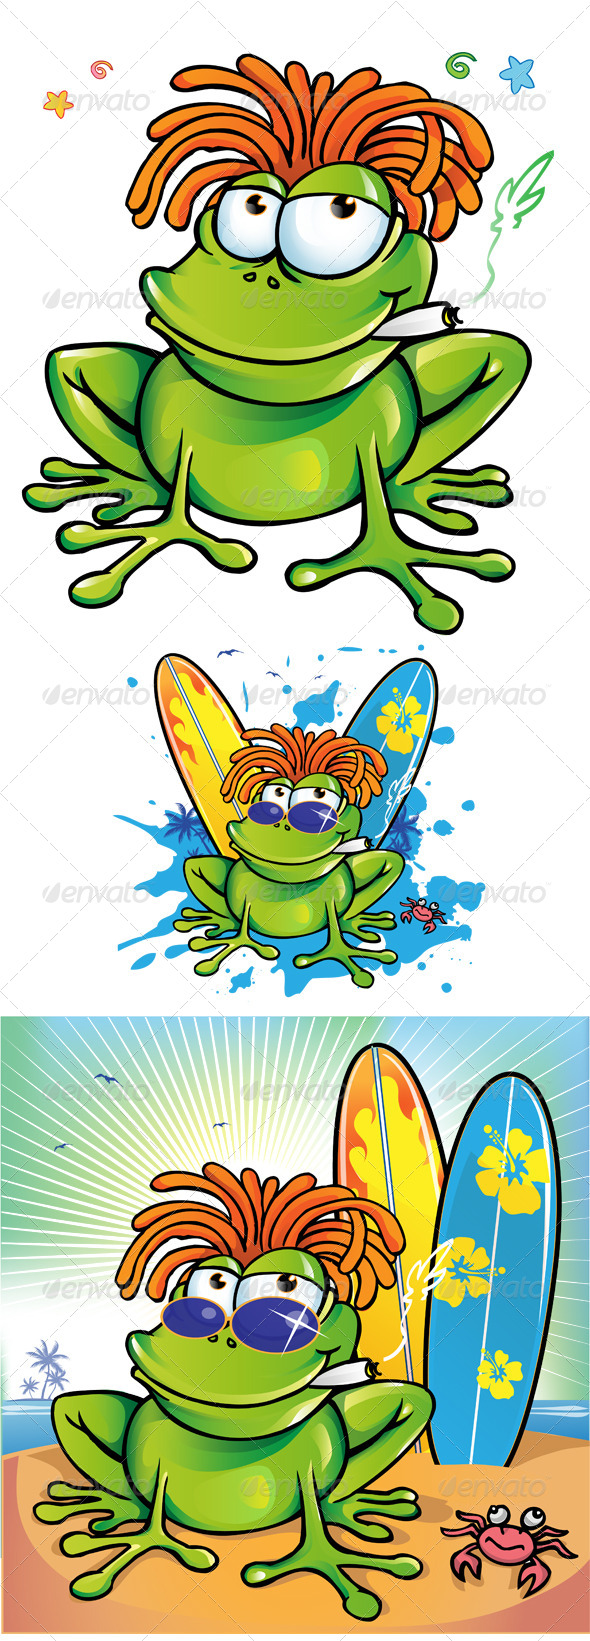 GraphicRiver Jamaican Frog Cartoon Collection 7824874